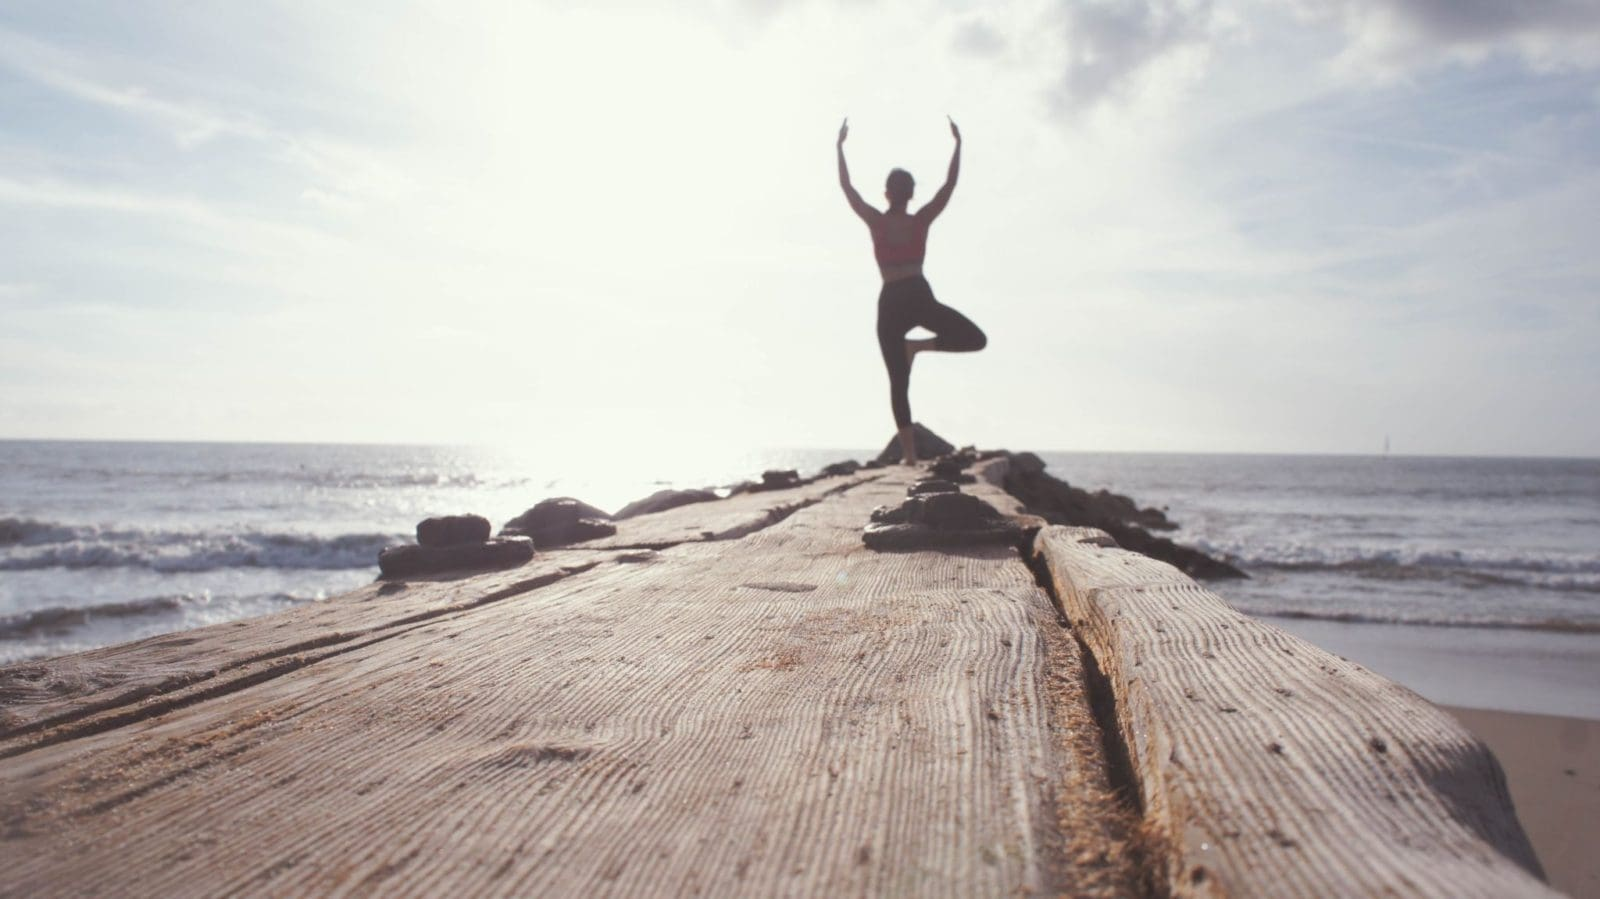 Yoga pose by the seaside